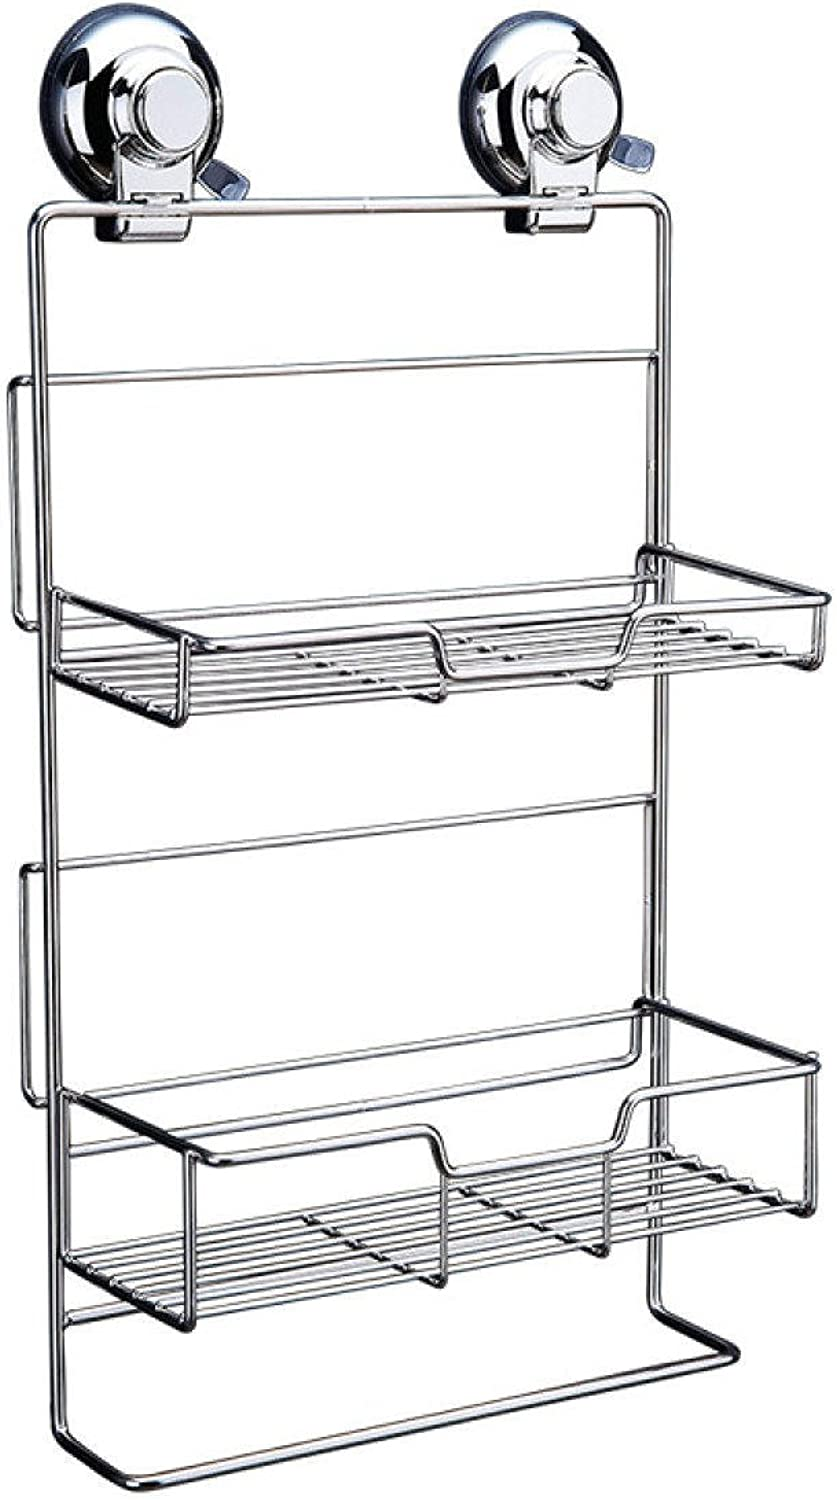 salida de fábrica Uns Uns Uns Storage Rack Storage Shelf Bao Powerful Sucker Shelf Kitchen Succión Wall Storage Rack Free Hanging plata 9.1  3.9  16.5in  Tienda de moda y compras online.